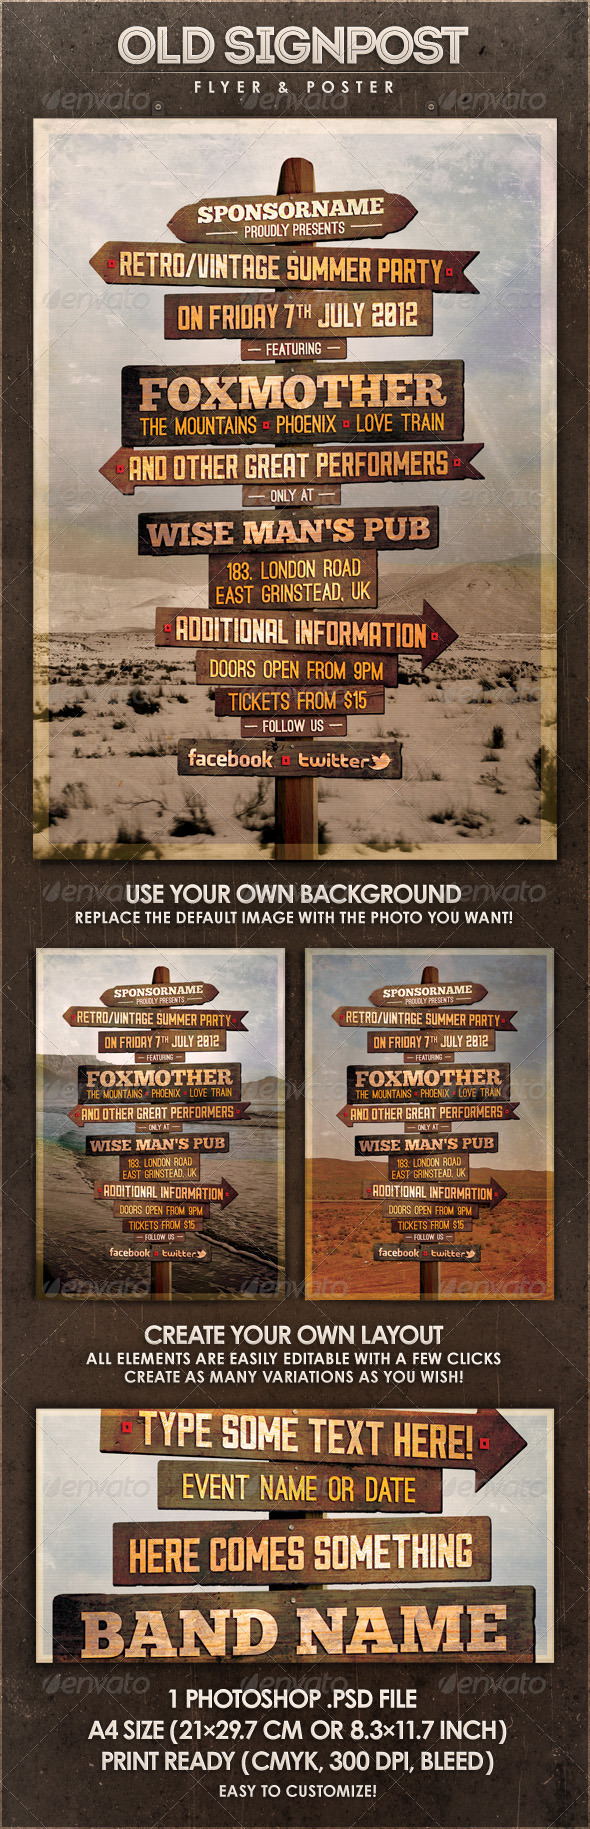 GraphicRiver Old Signpost Flyer & Poster 2665314